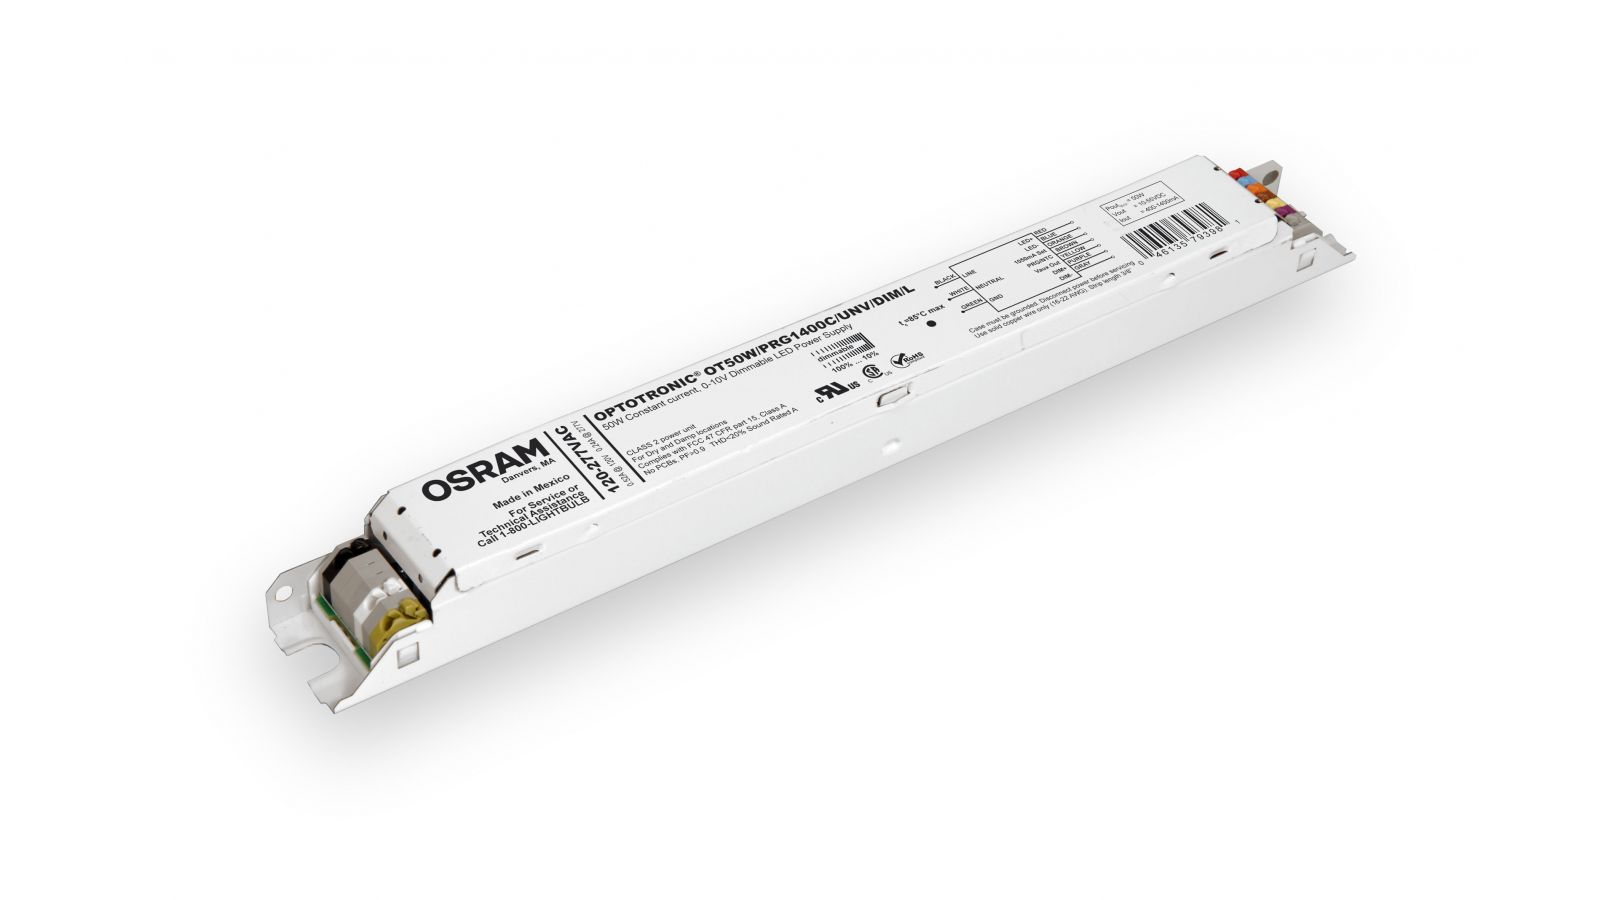 OSRAM OPTOTRONIC Programmable Linear Constant Current Dimmable LED Power Supplies